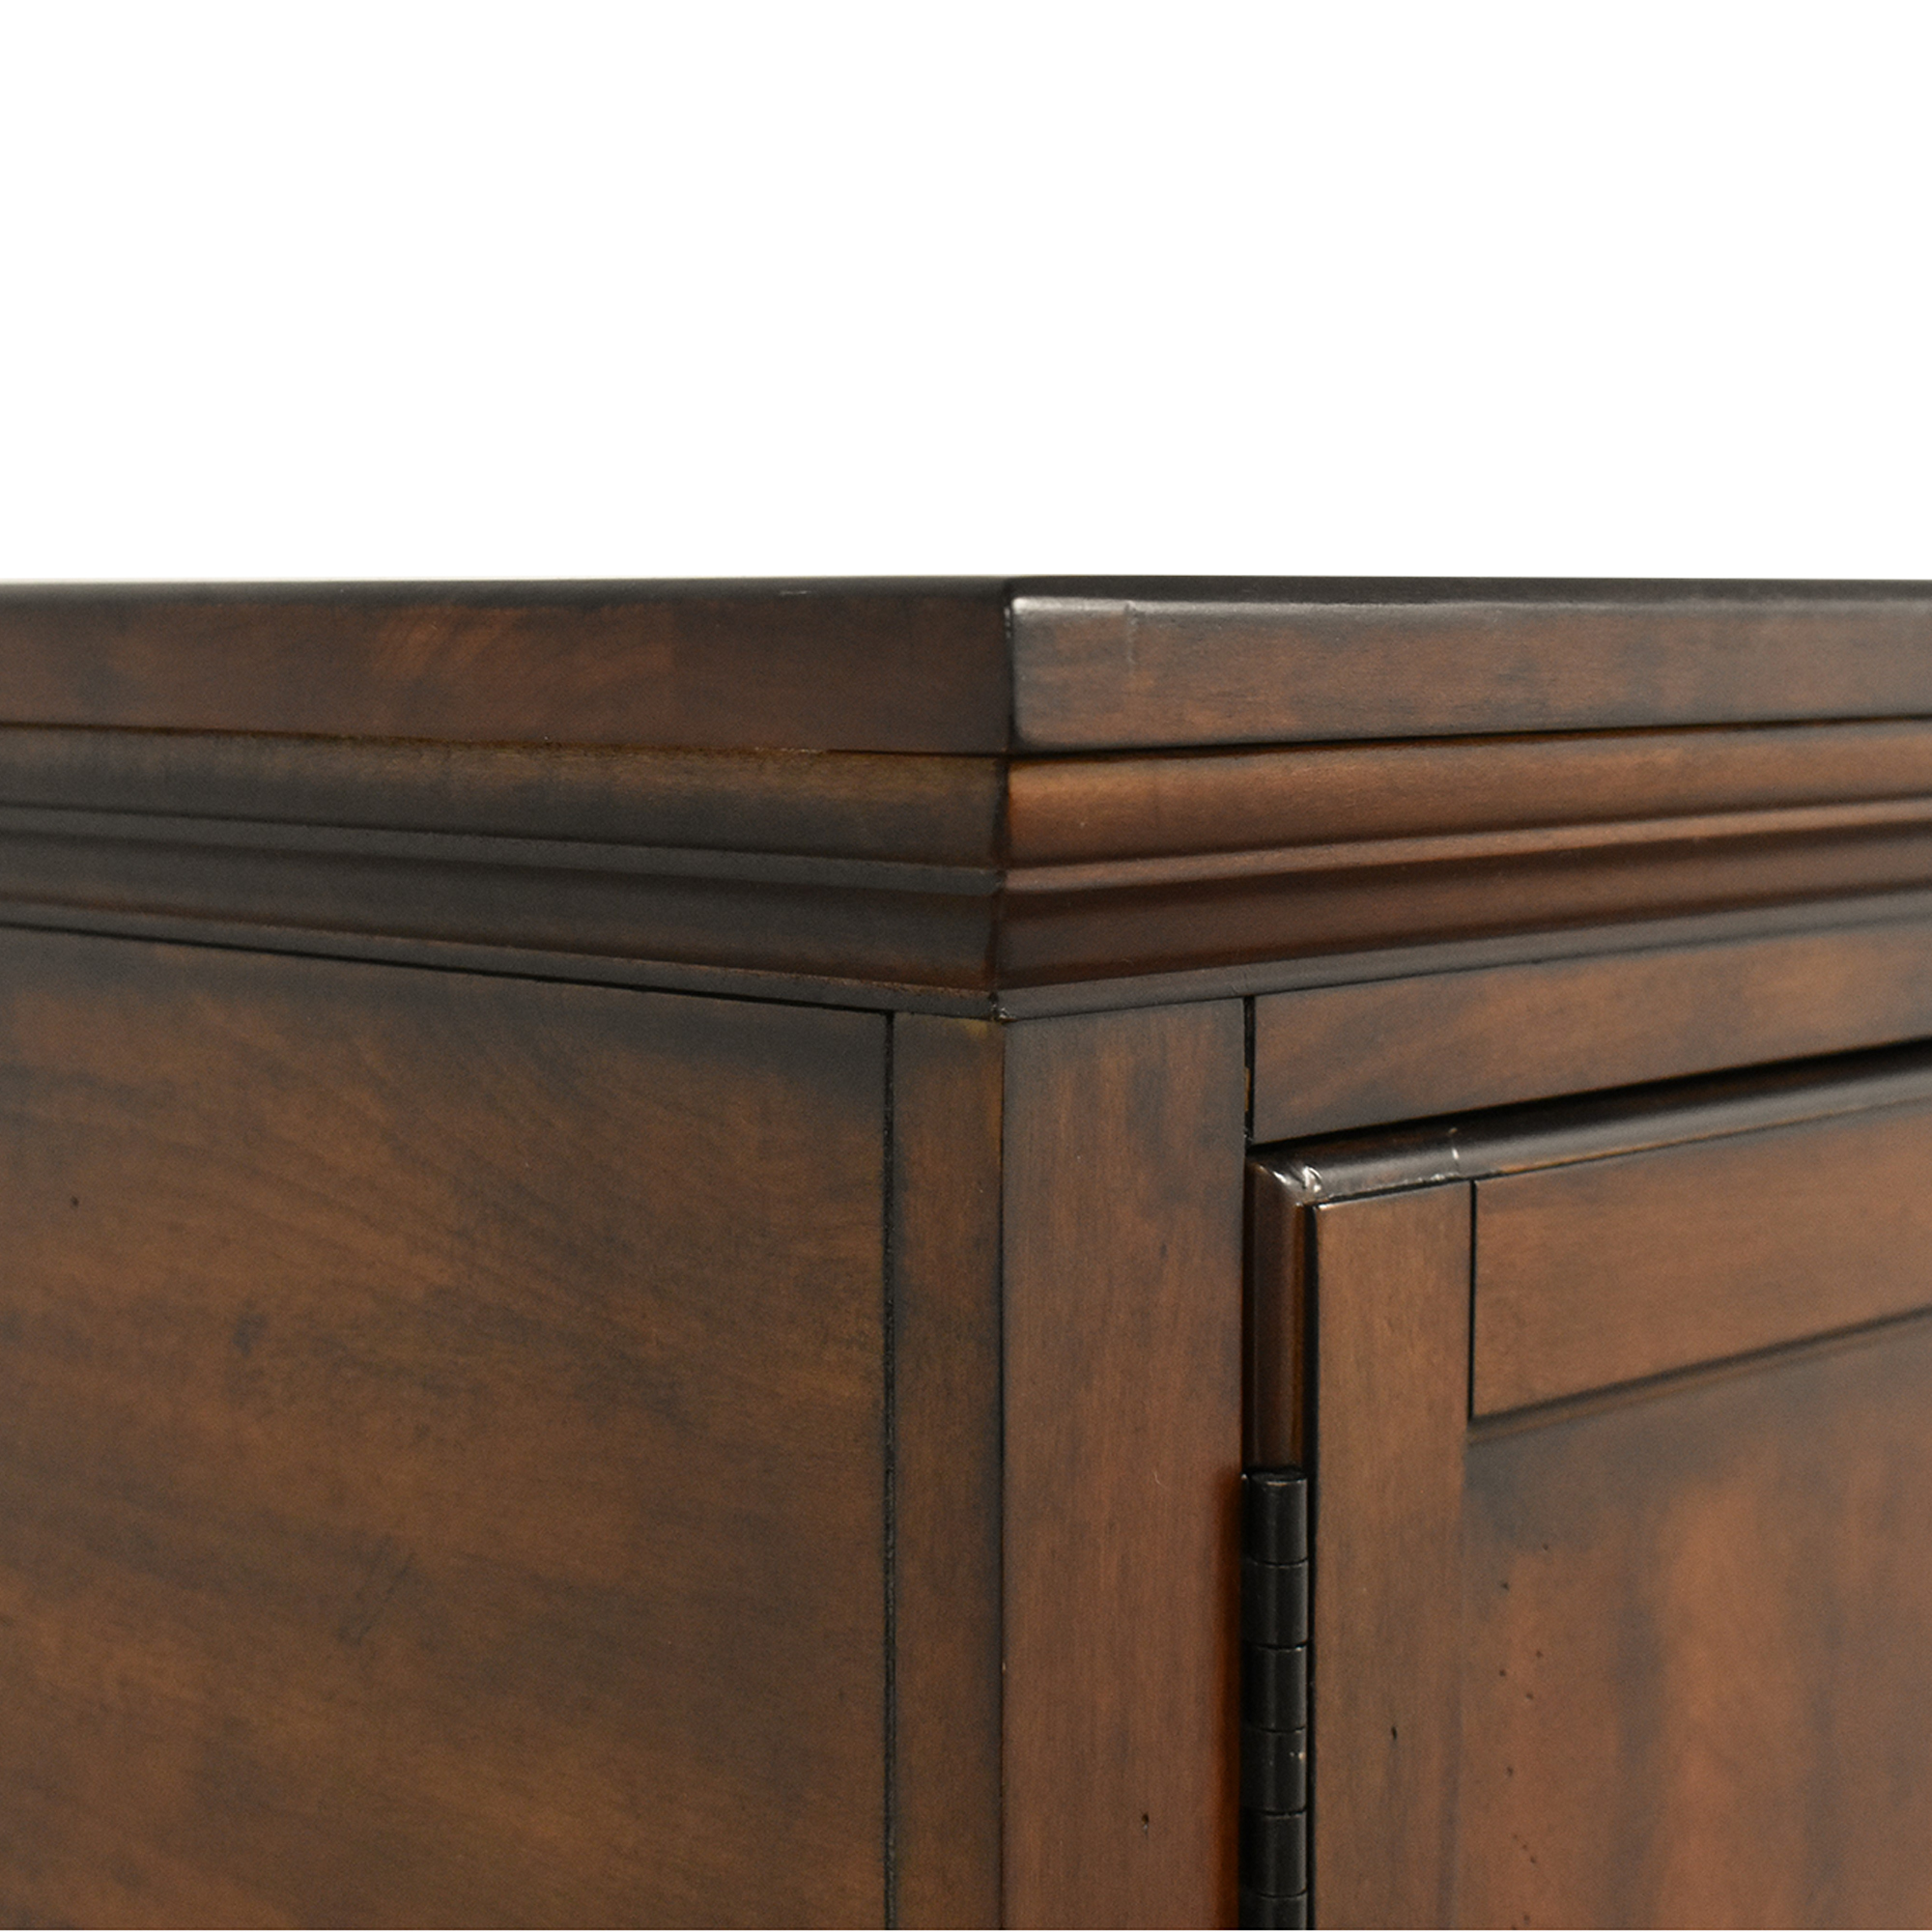 Cresent Furniture Cresent Furniture Tall Chest on sale